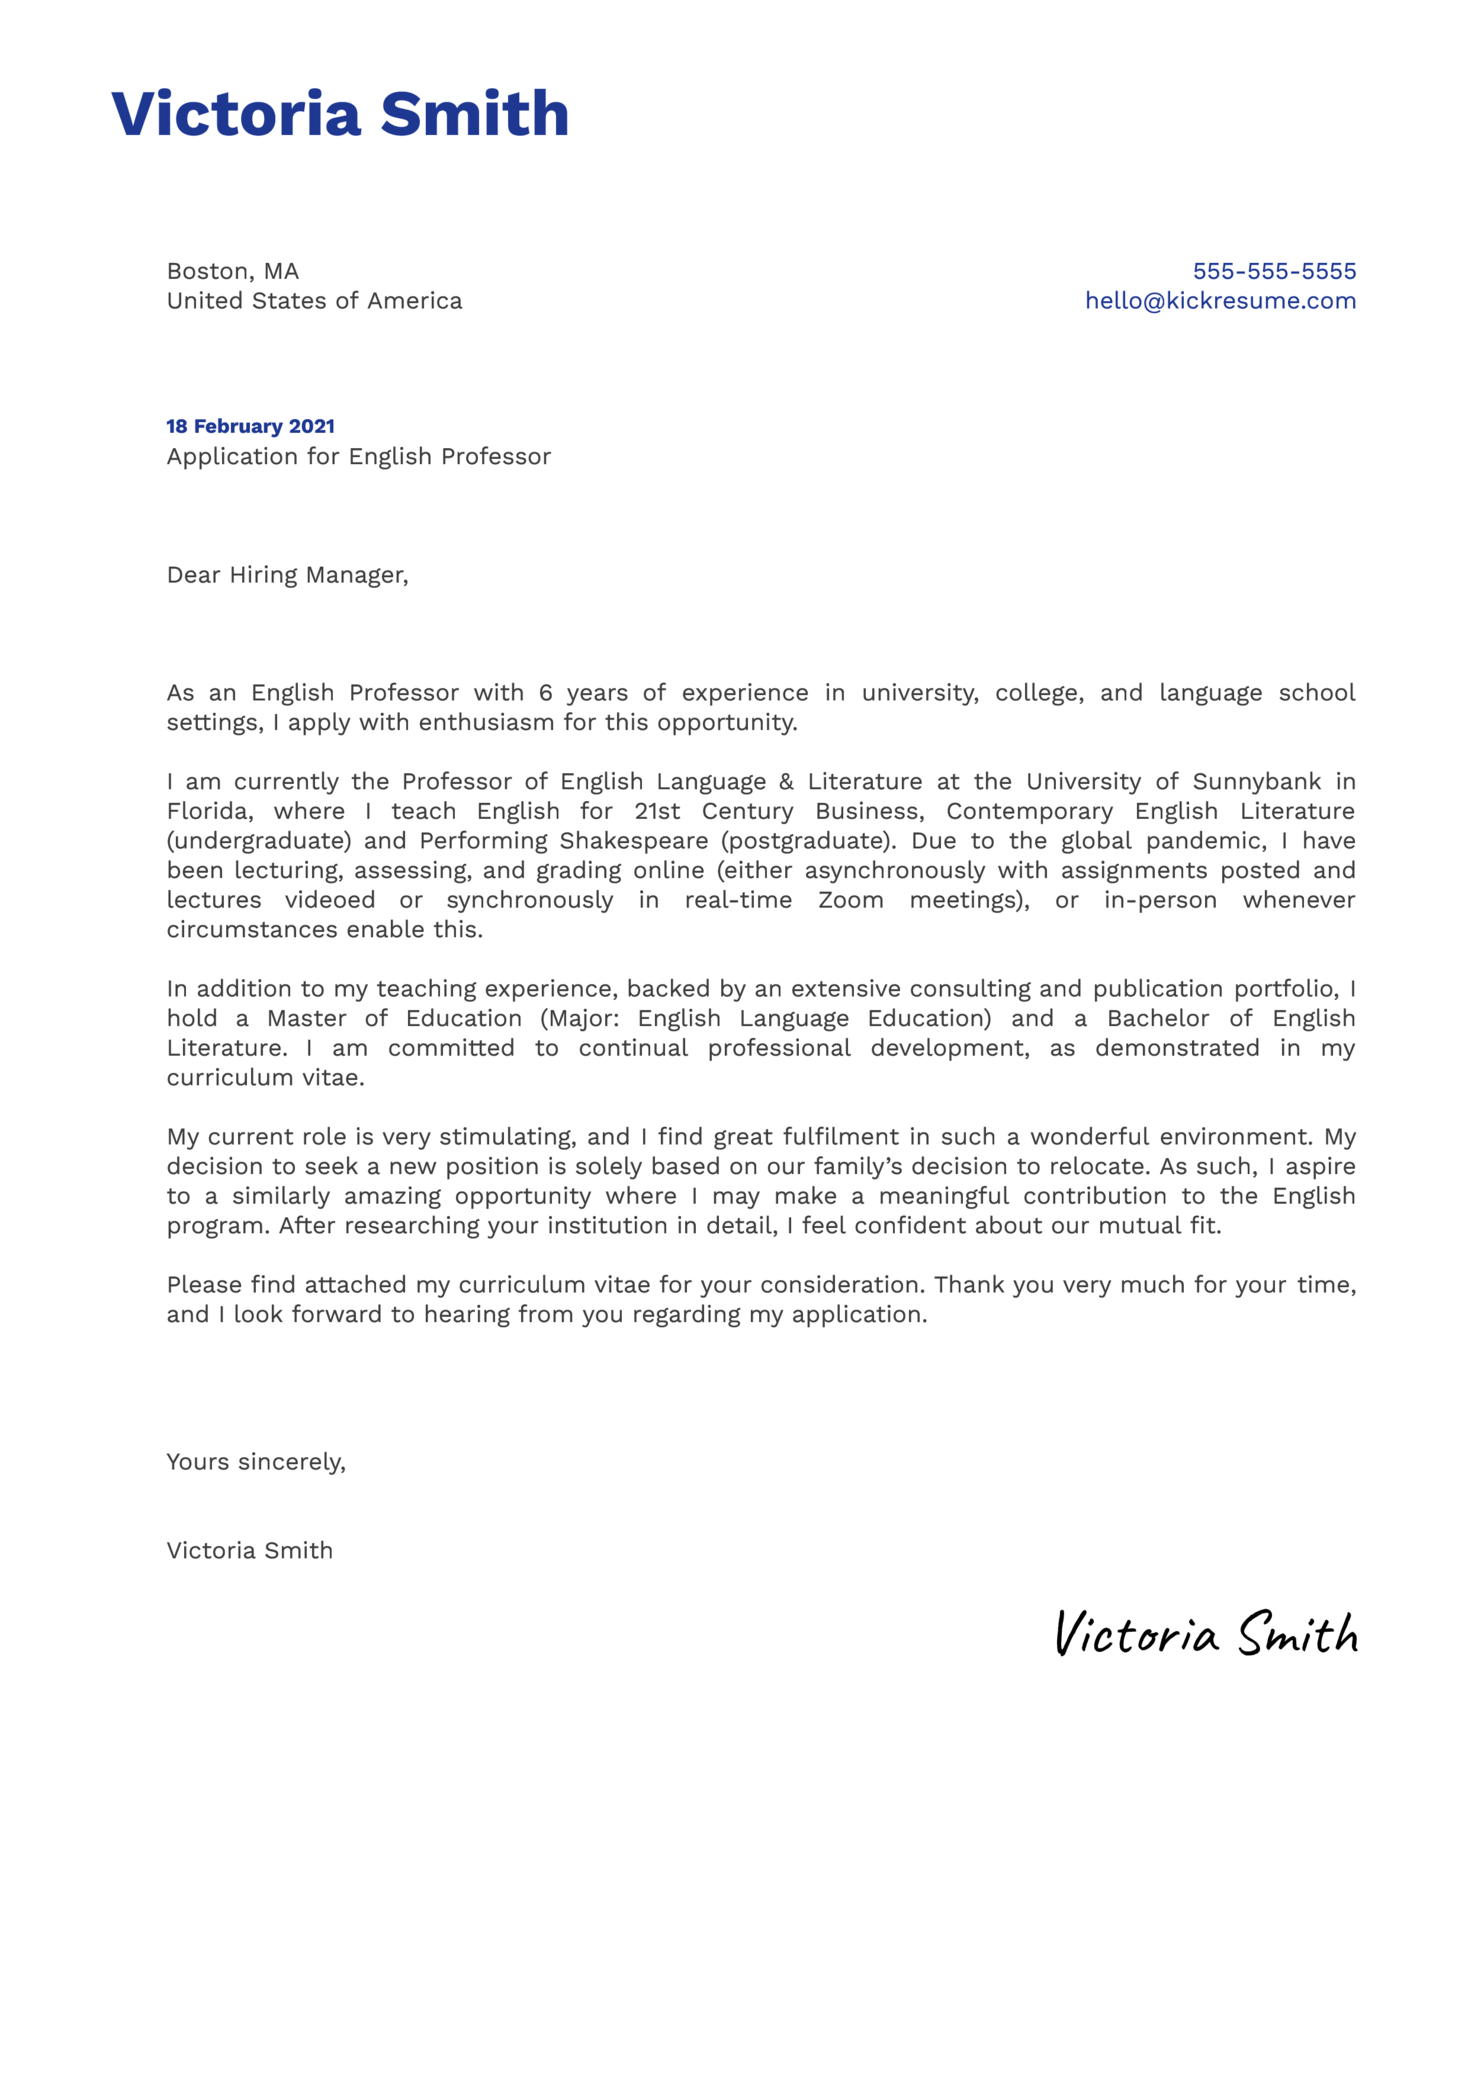 English Professor Cover Letter Example